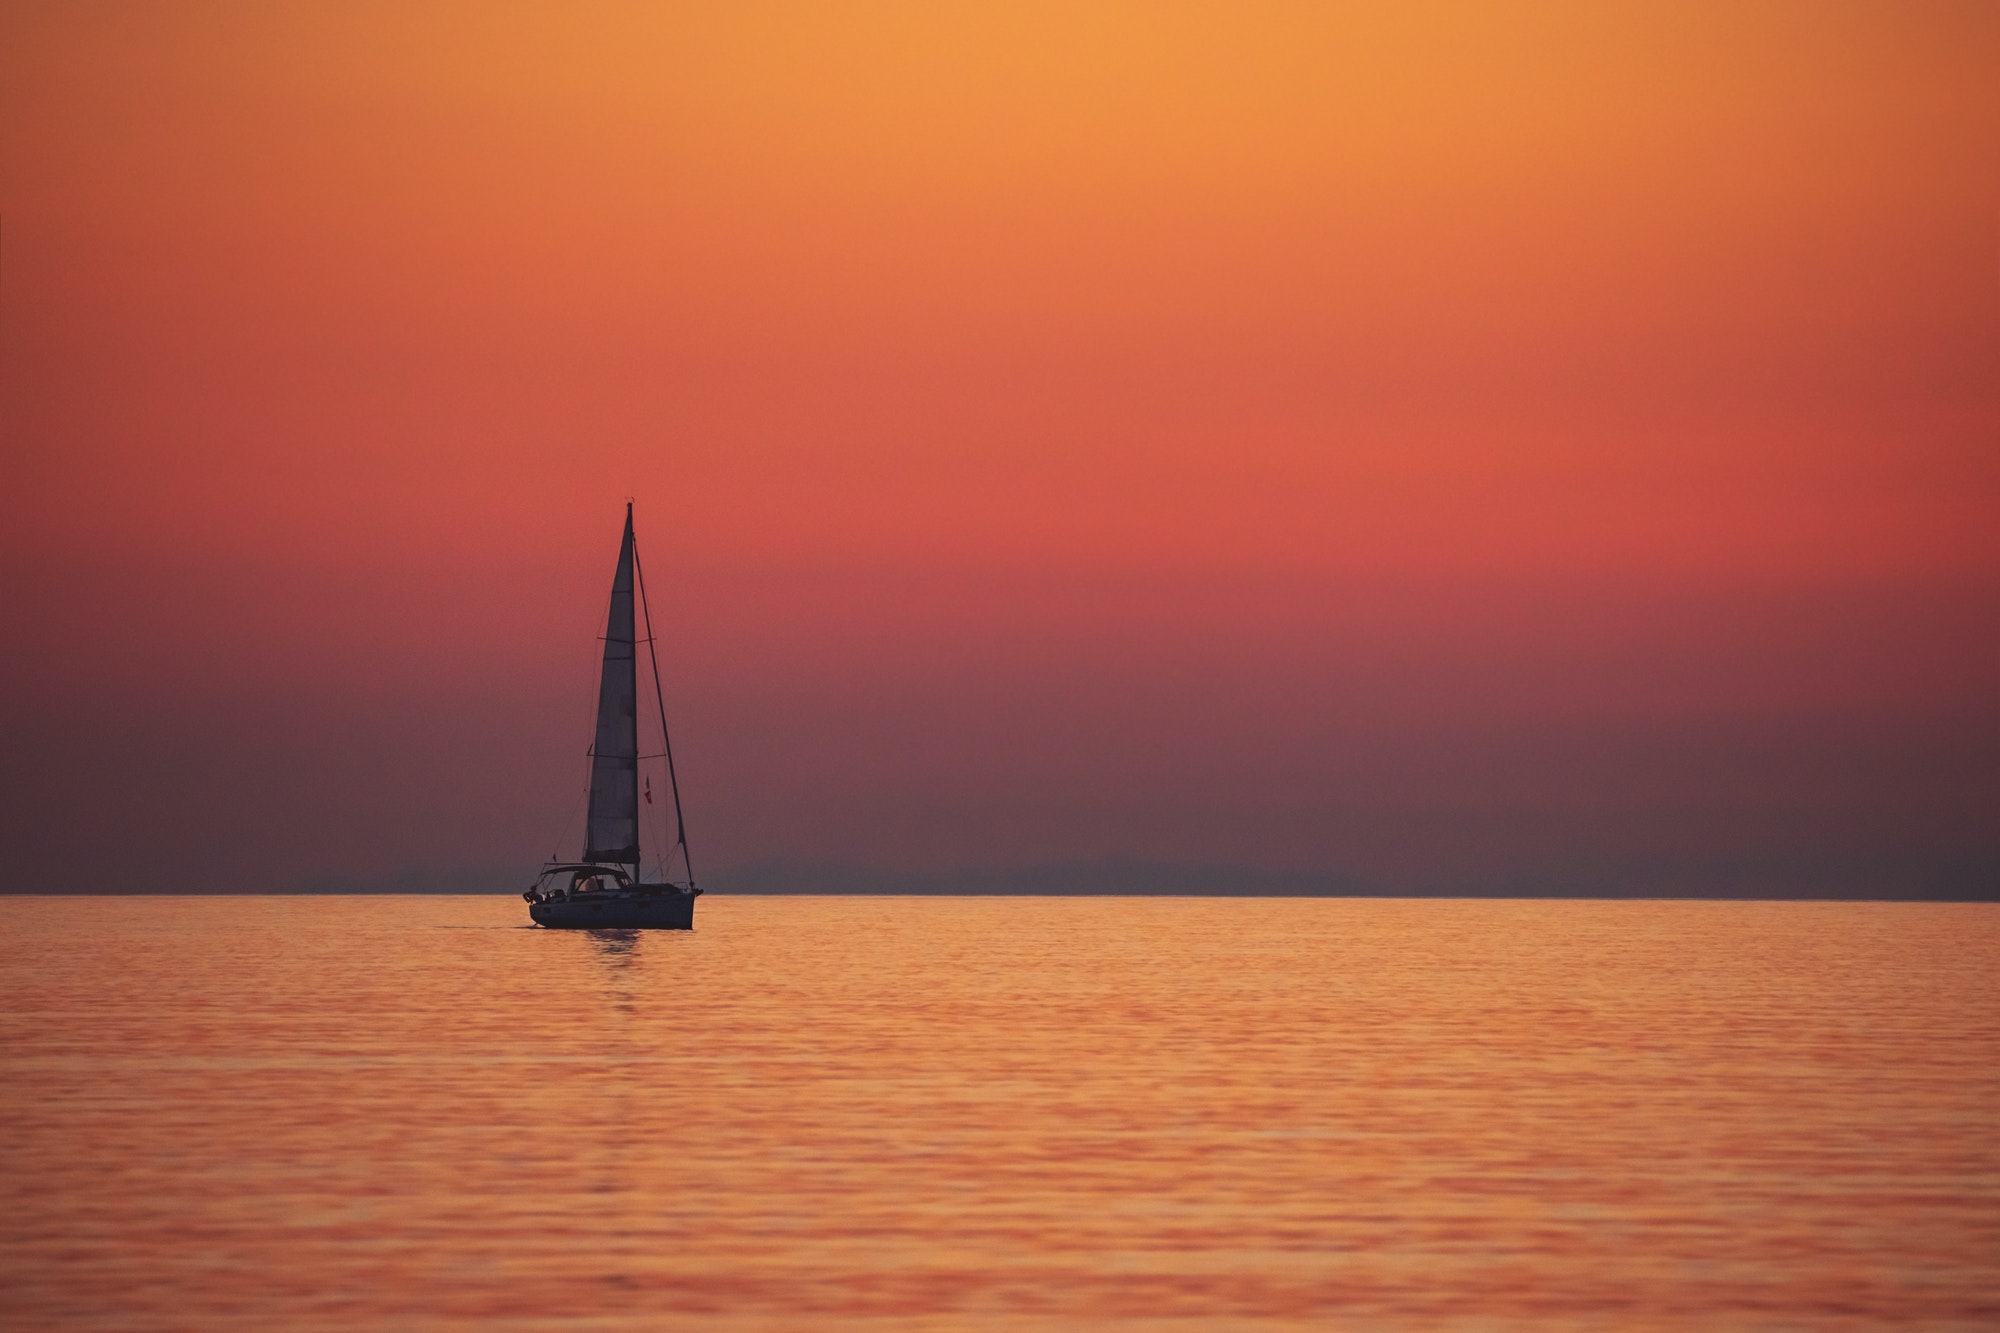 Sail boat over sunset